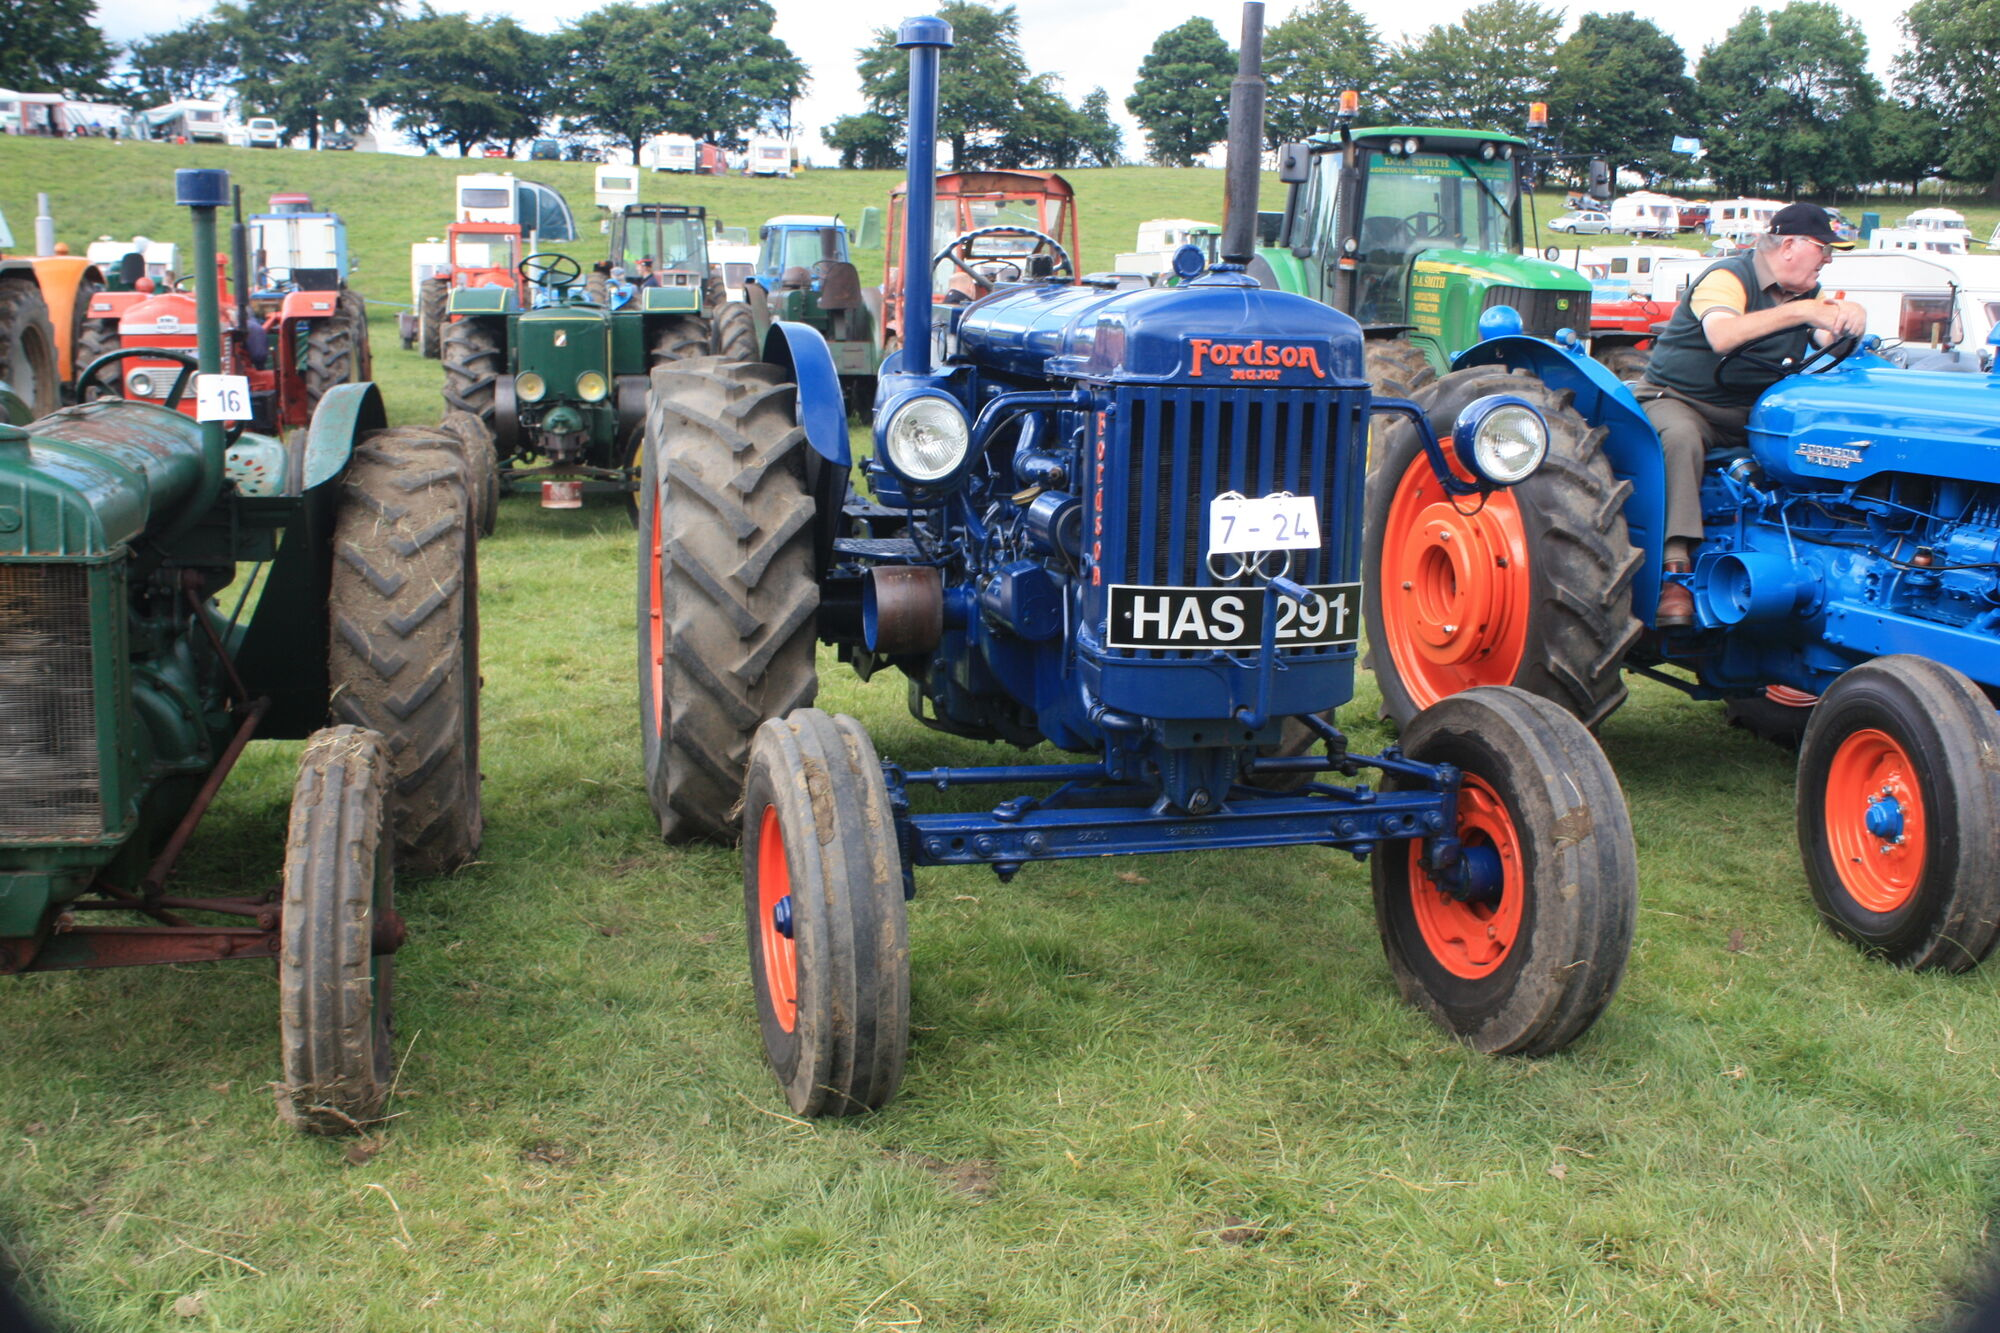 Fordson e27n major tractor construction plant wiki fandom powered by wikia